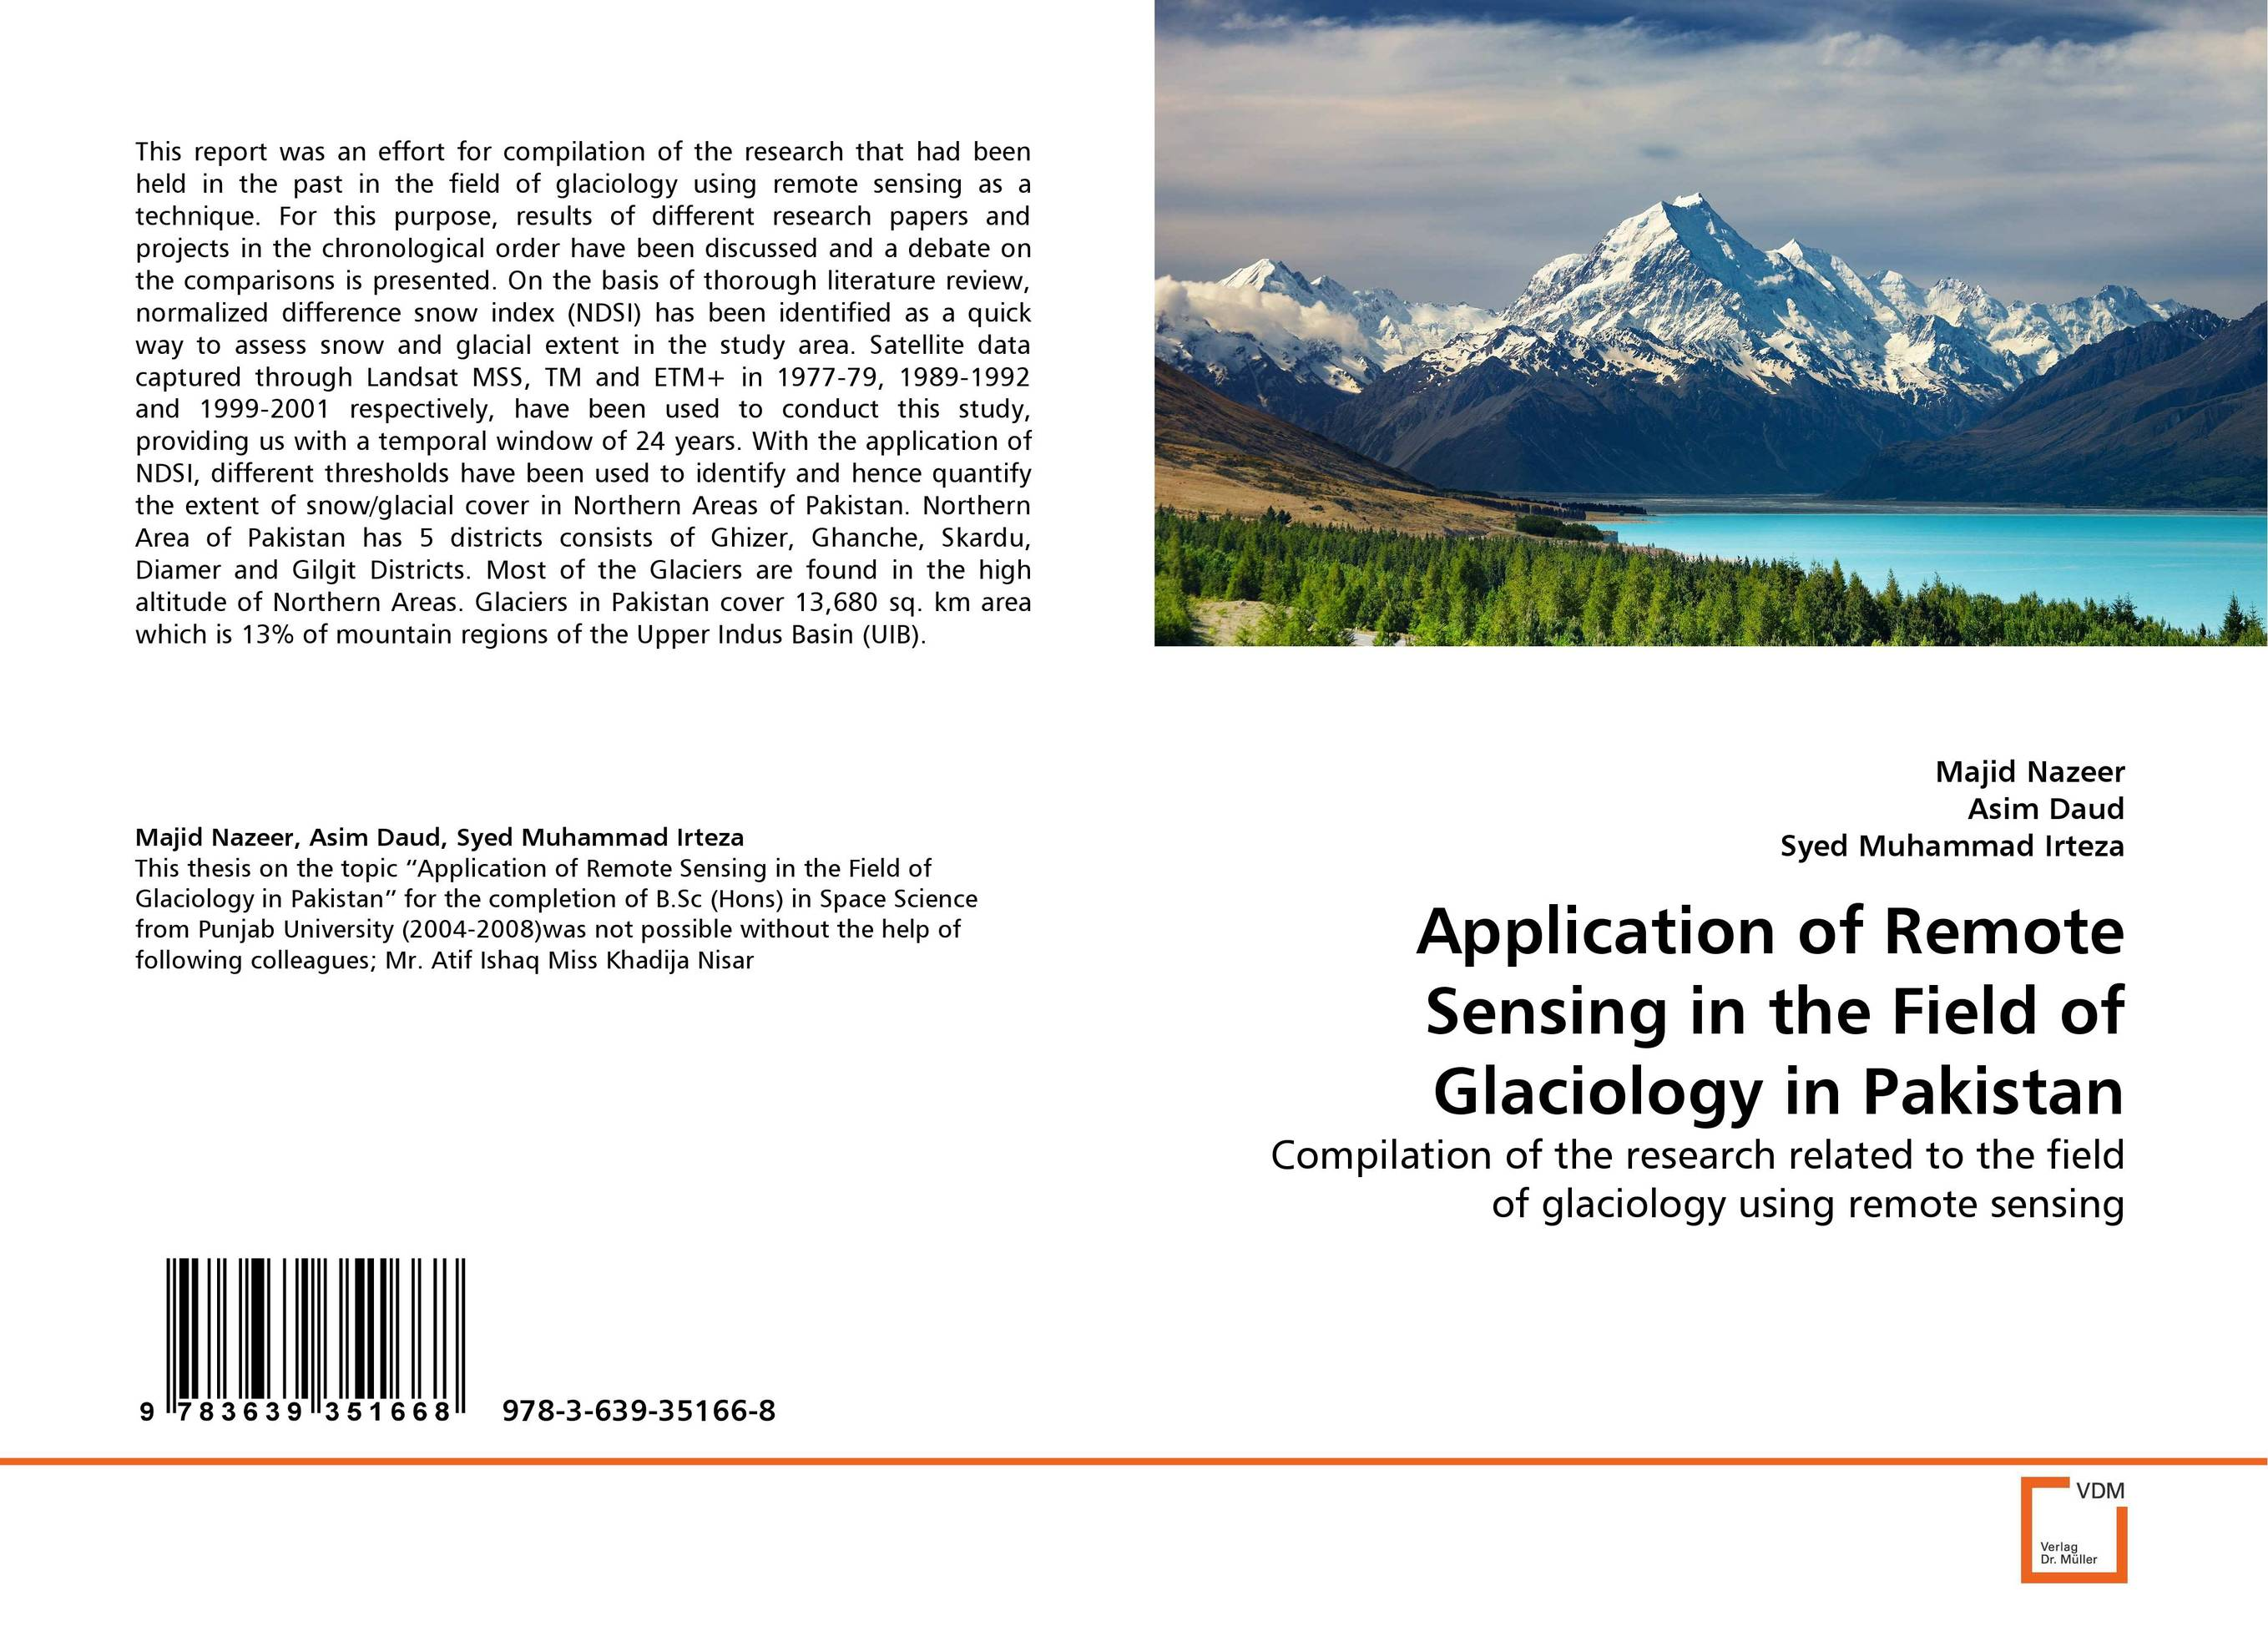 Application of Remote Sensing in the Field of Glaciology in Pakistan pakistan on the brink the future of pakistan afghanistan and the west